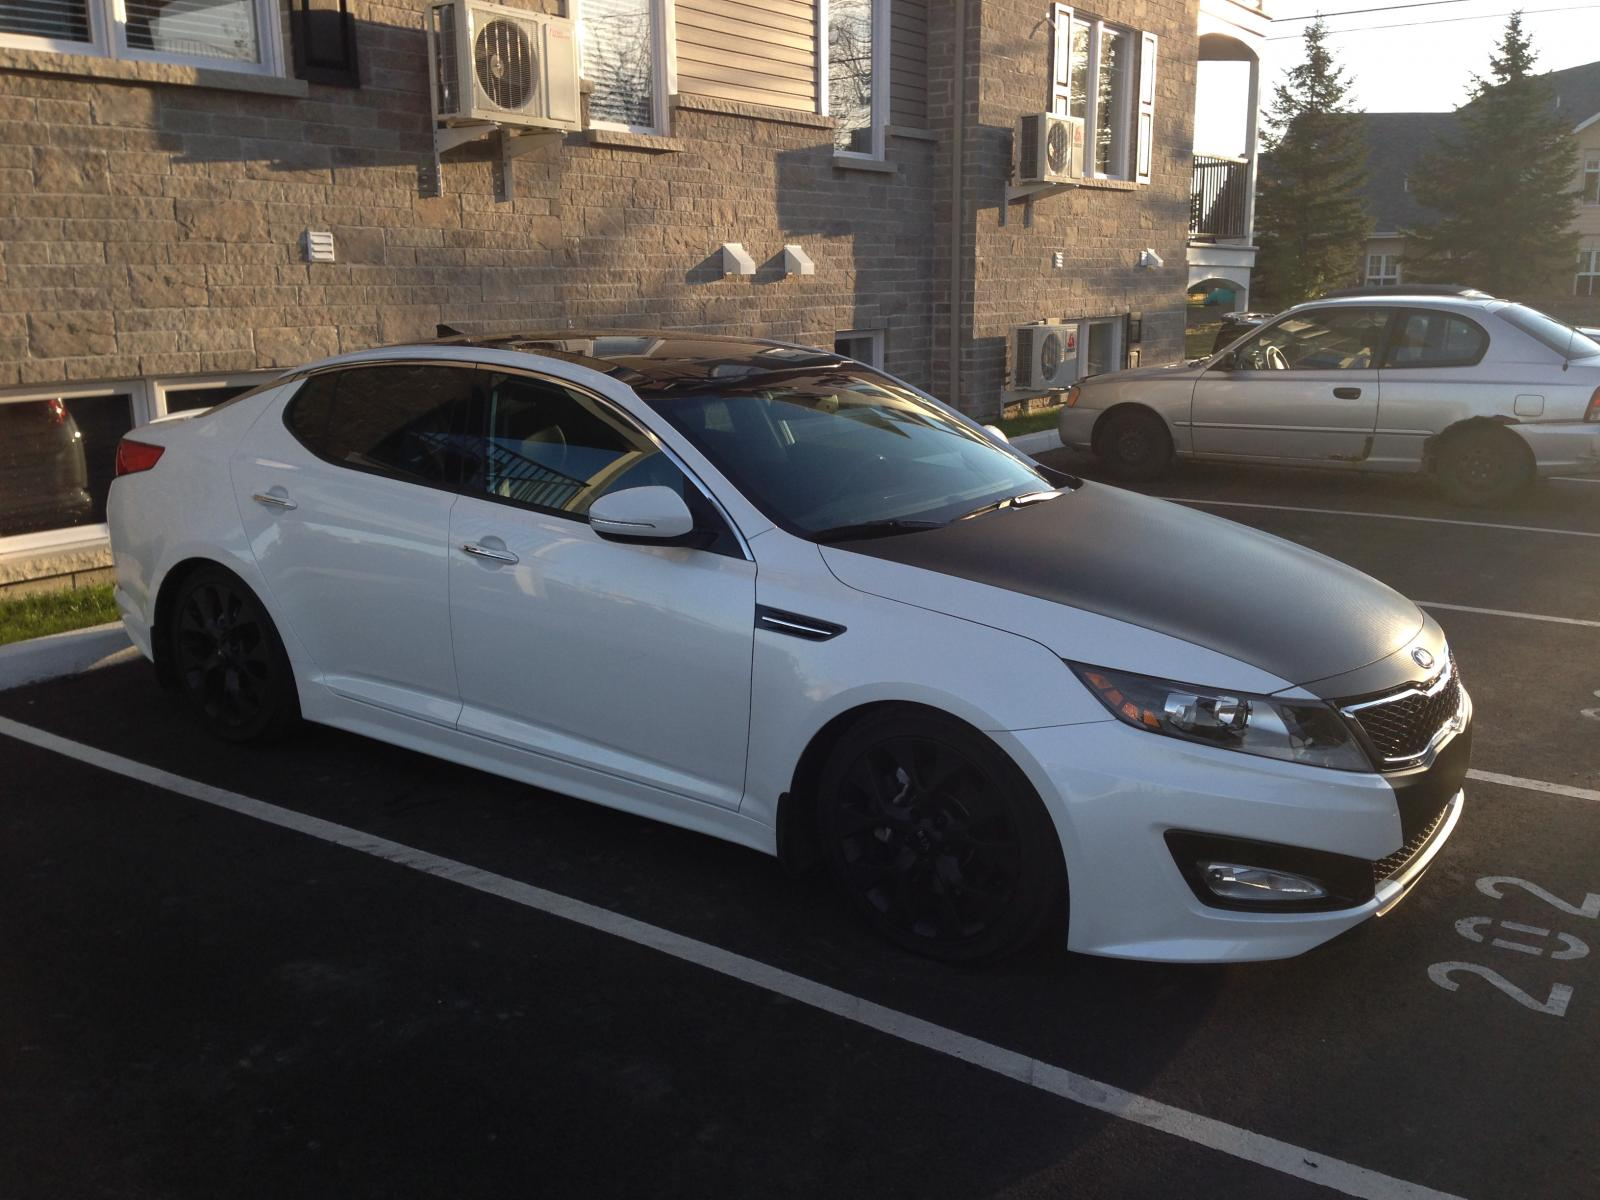 New Optima Sx Turbo!!! Check Engine Light After One Month??